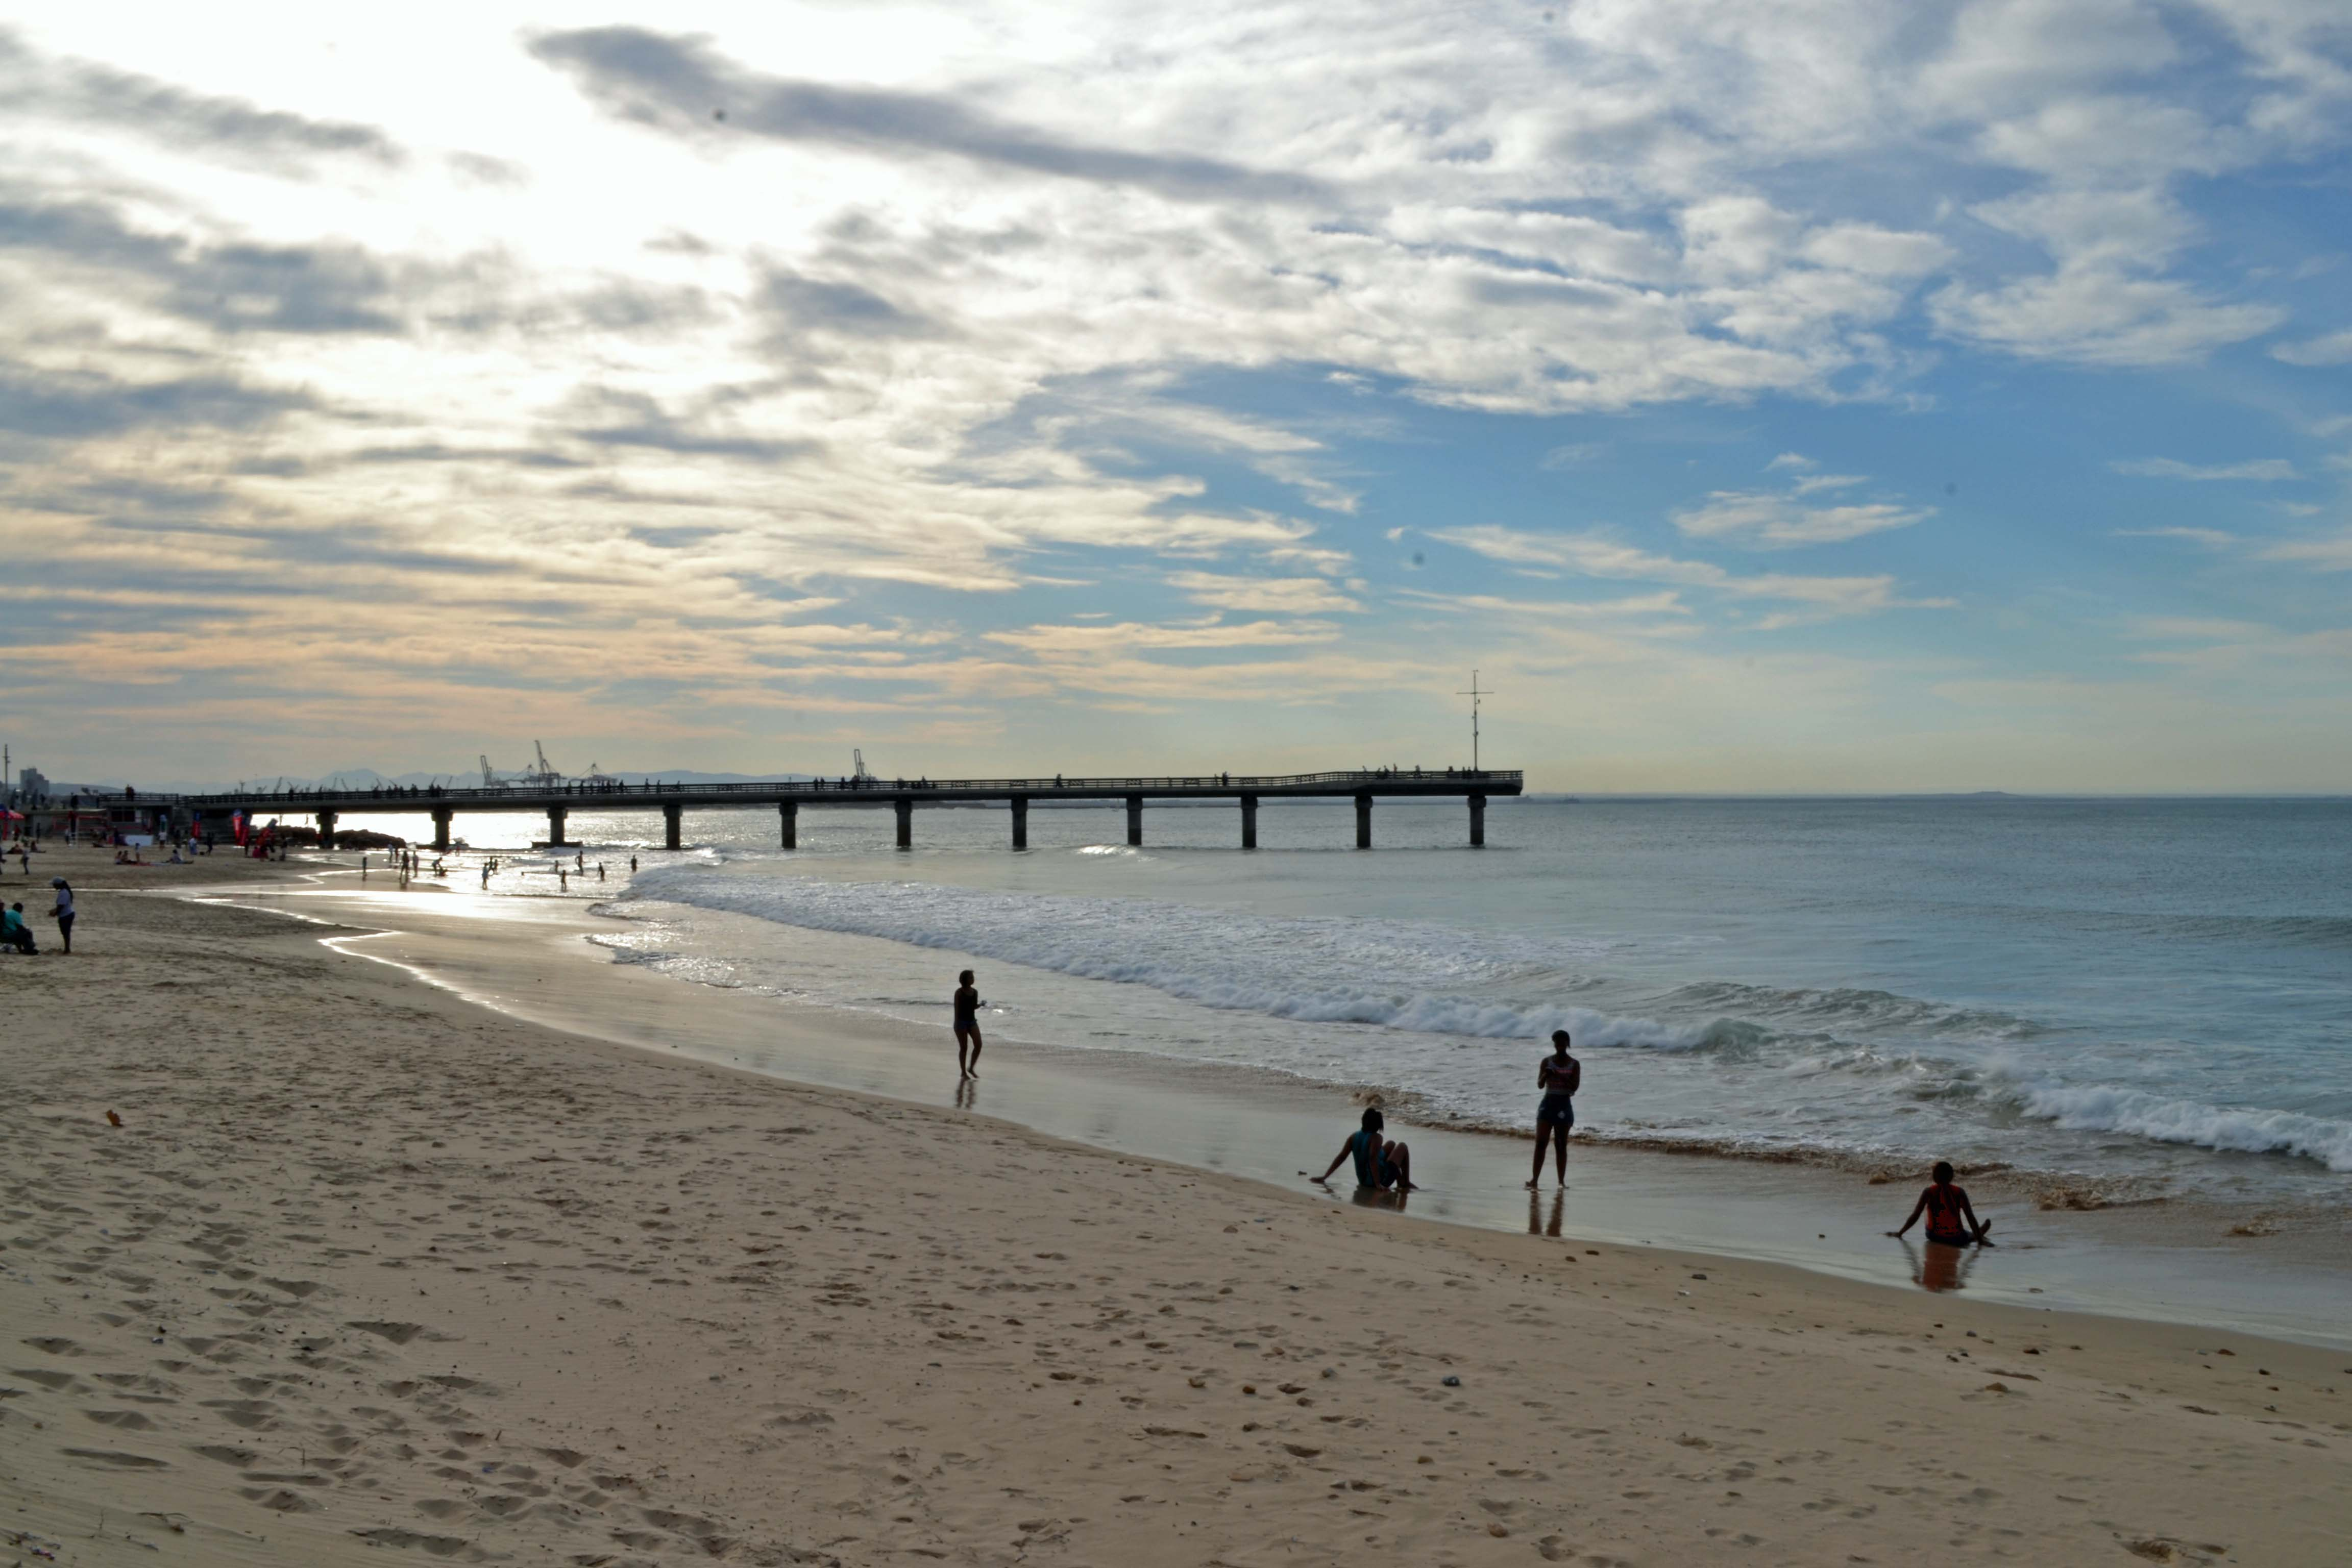 Things to do in port elizabeth family friendly nelson - What to do in port elizabeth south africa ...